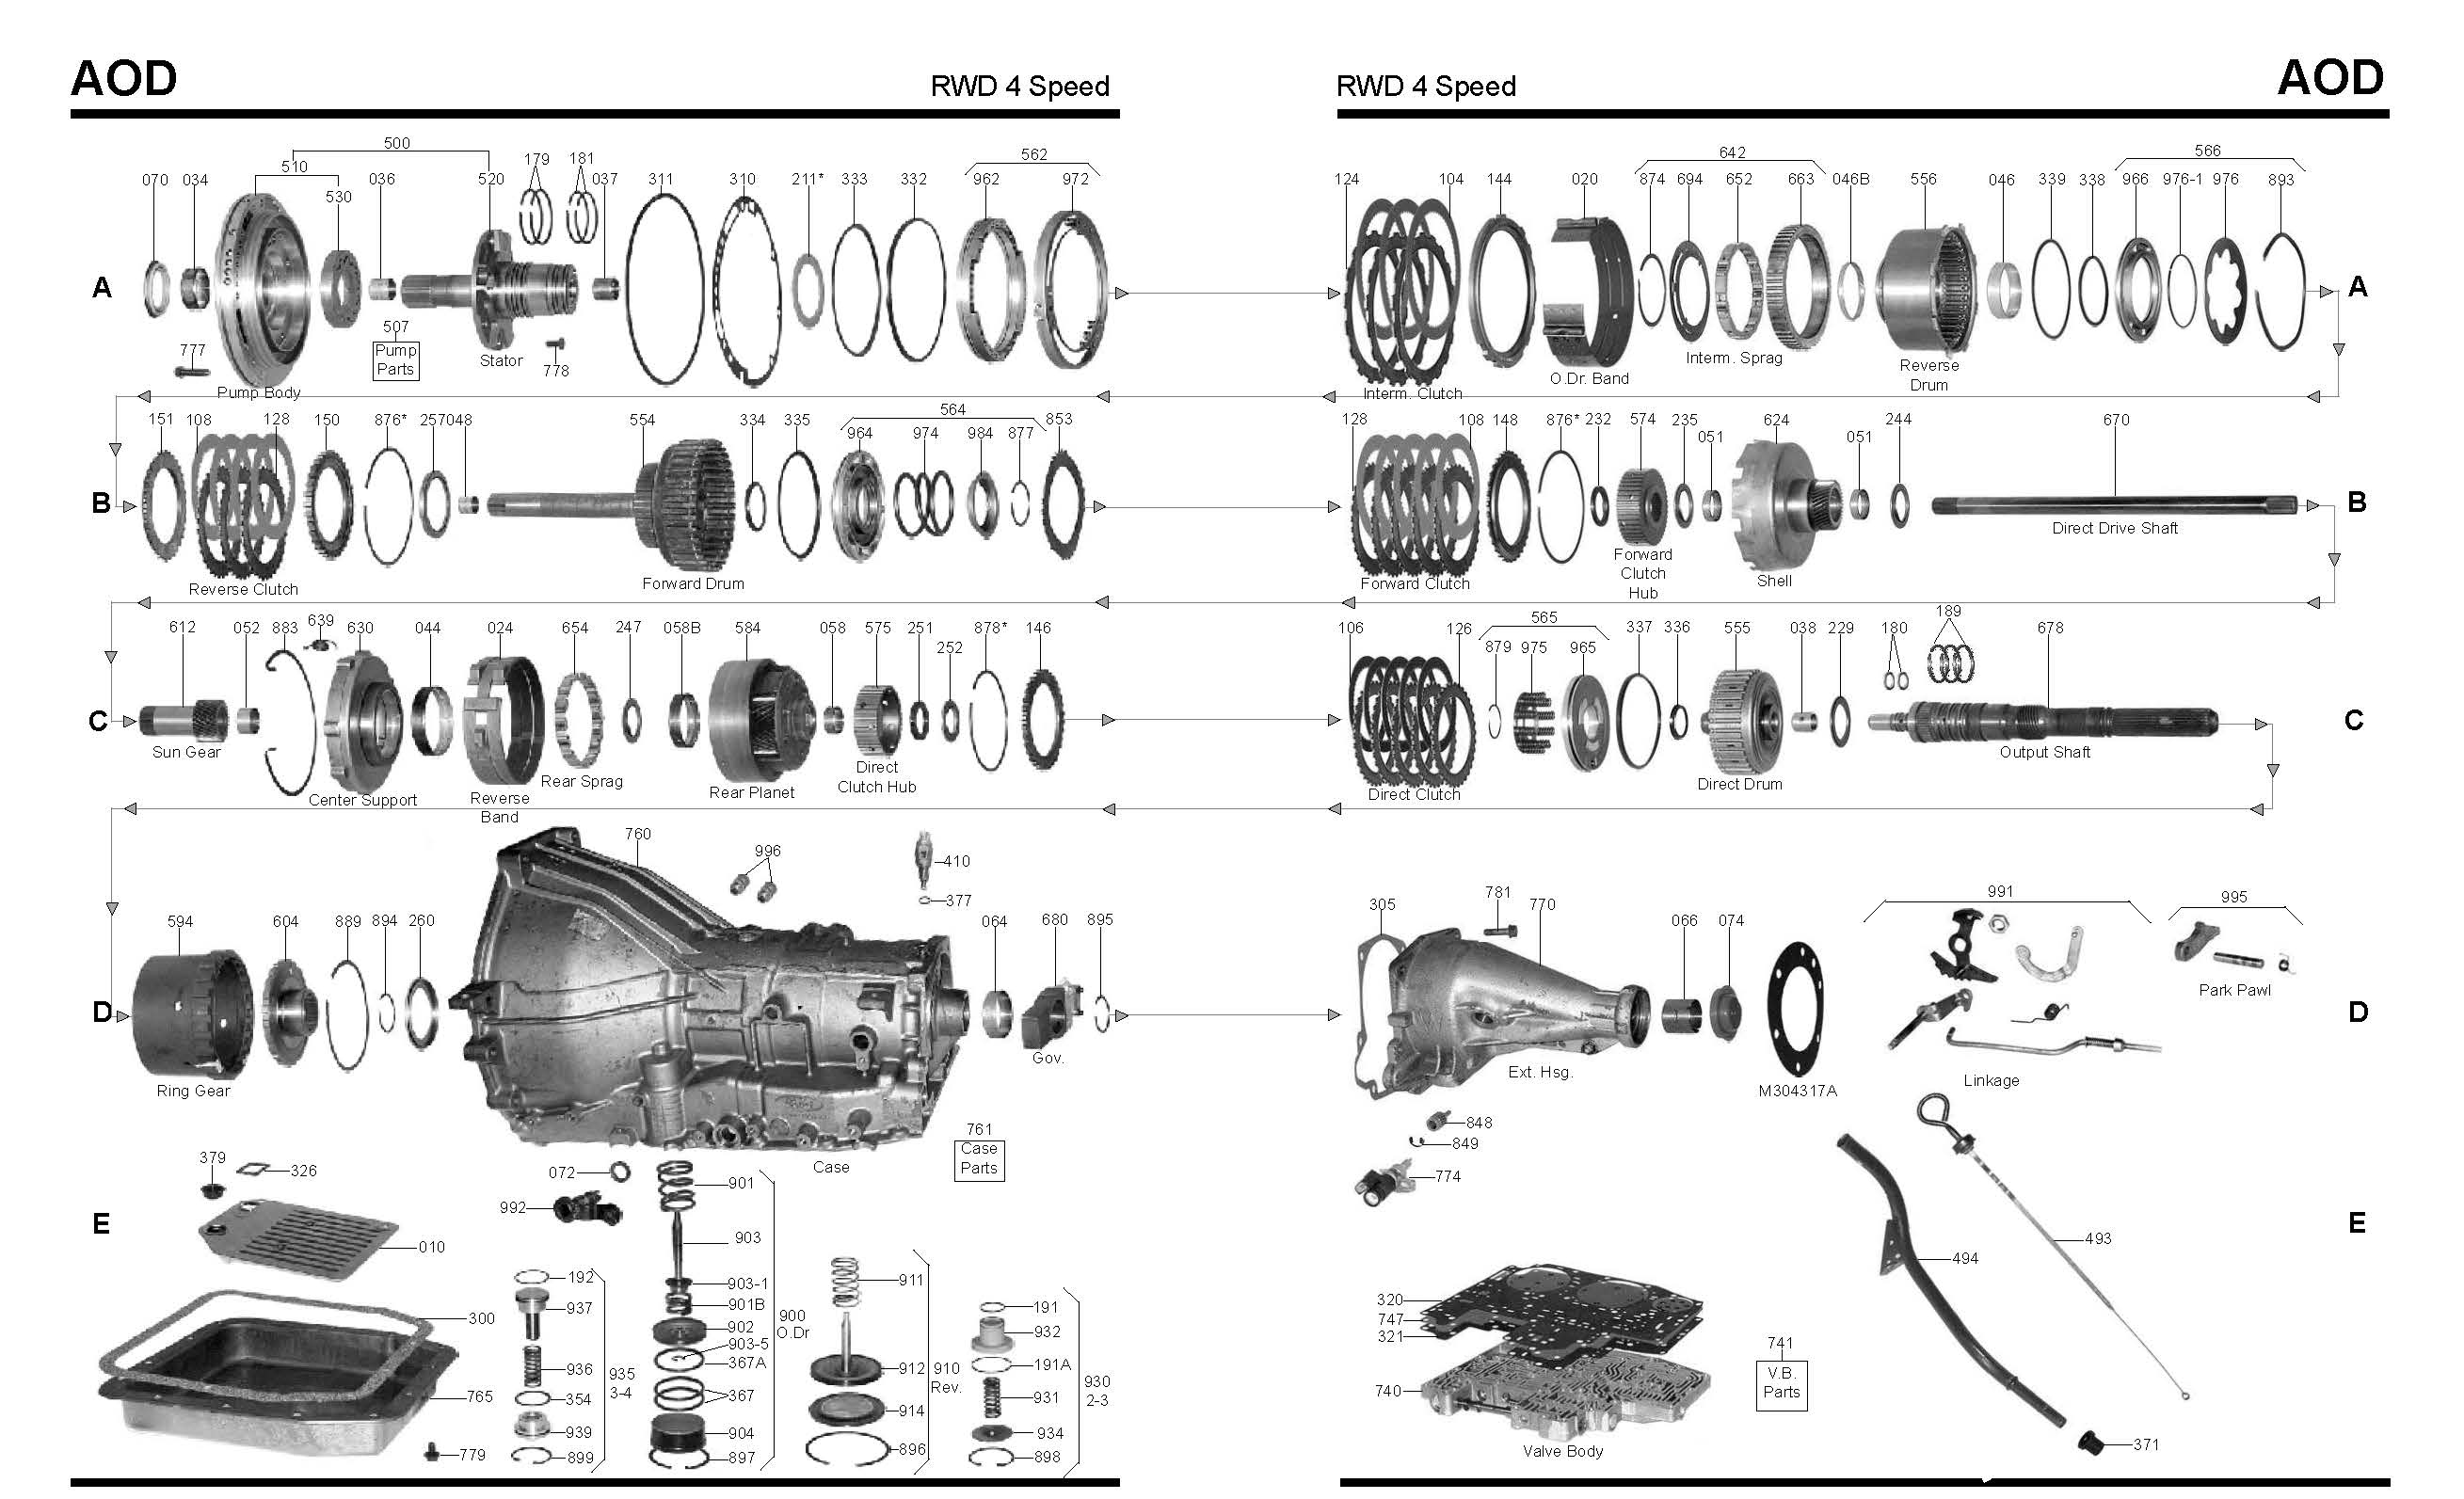 aod parts list diagram